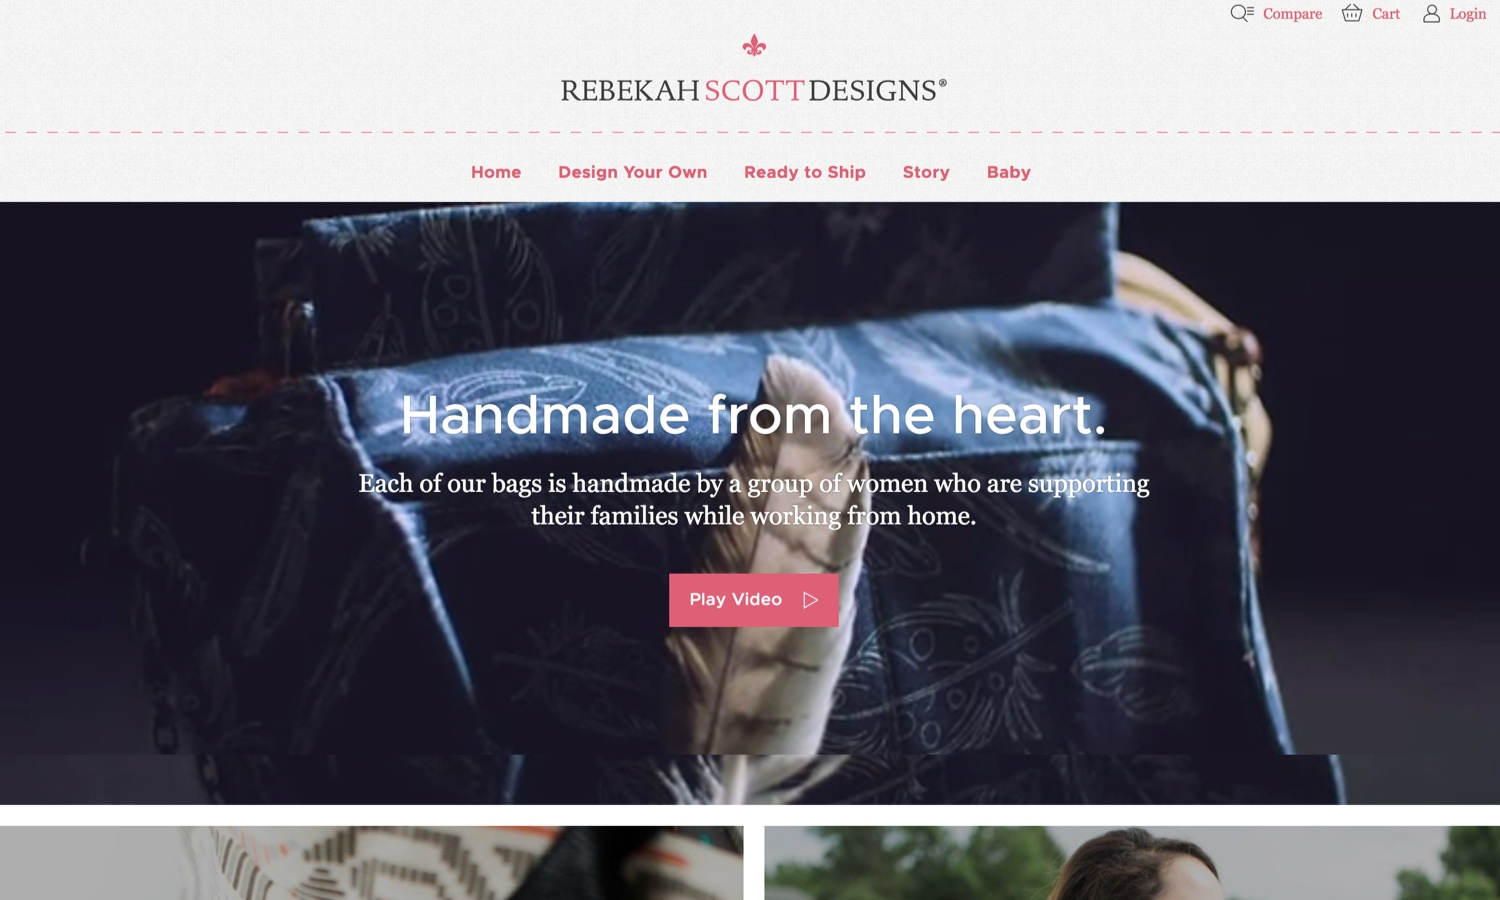 Screenshot of website for Rebekah Scott Designs